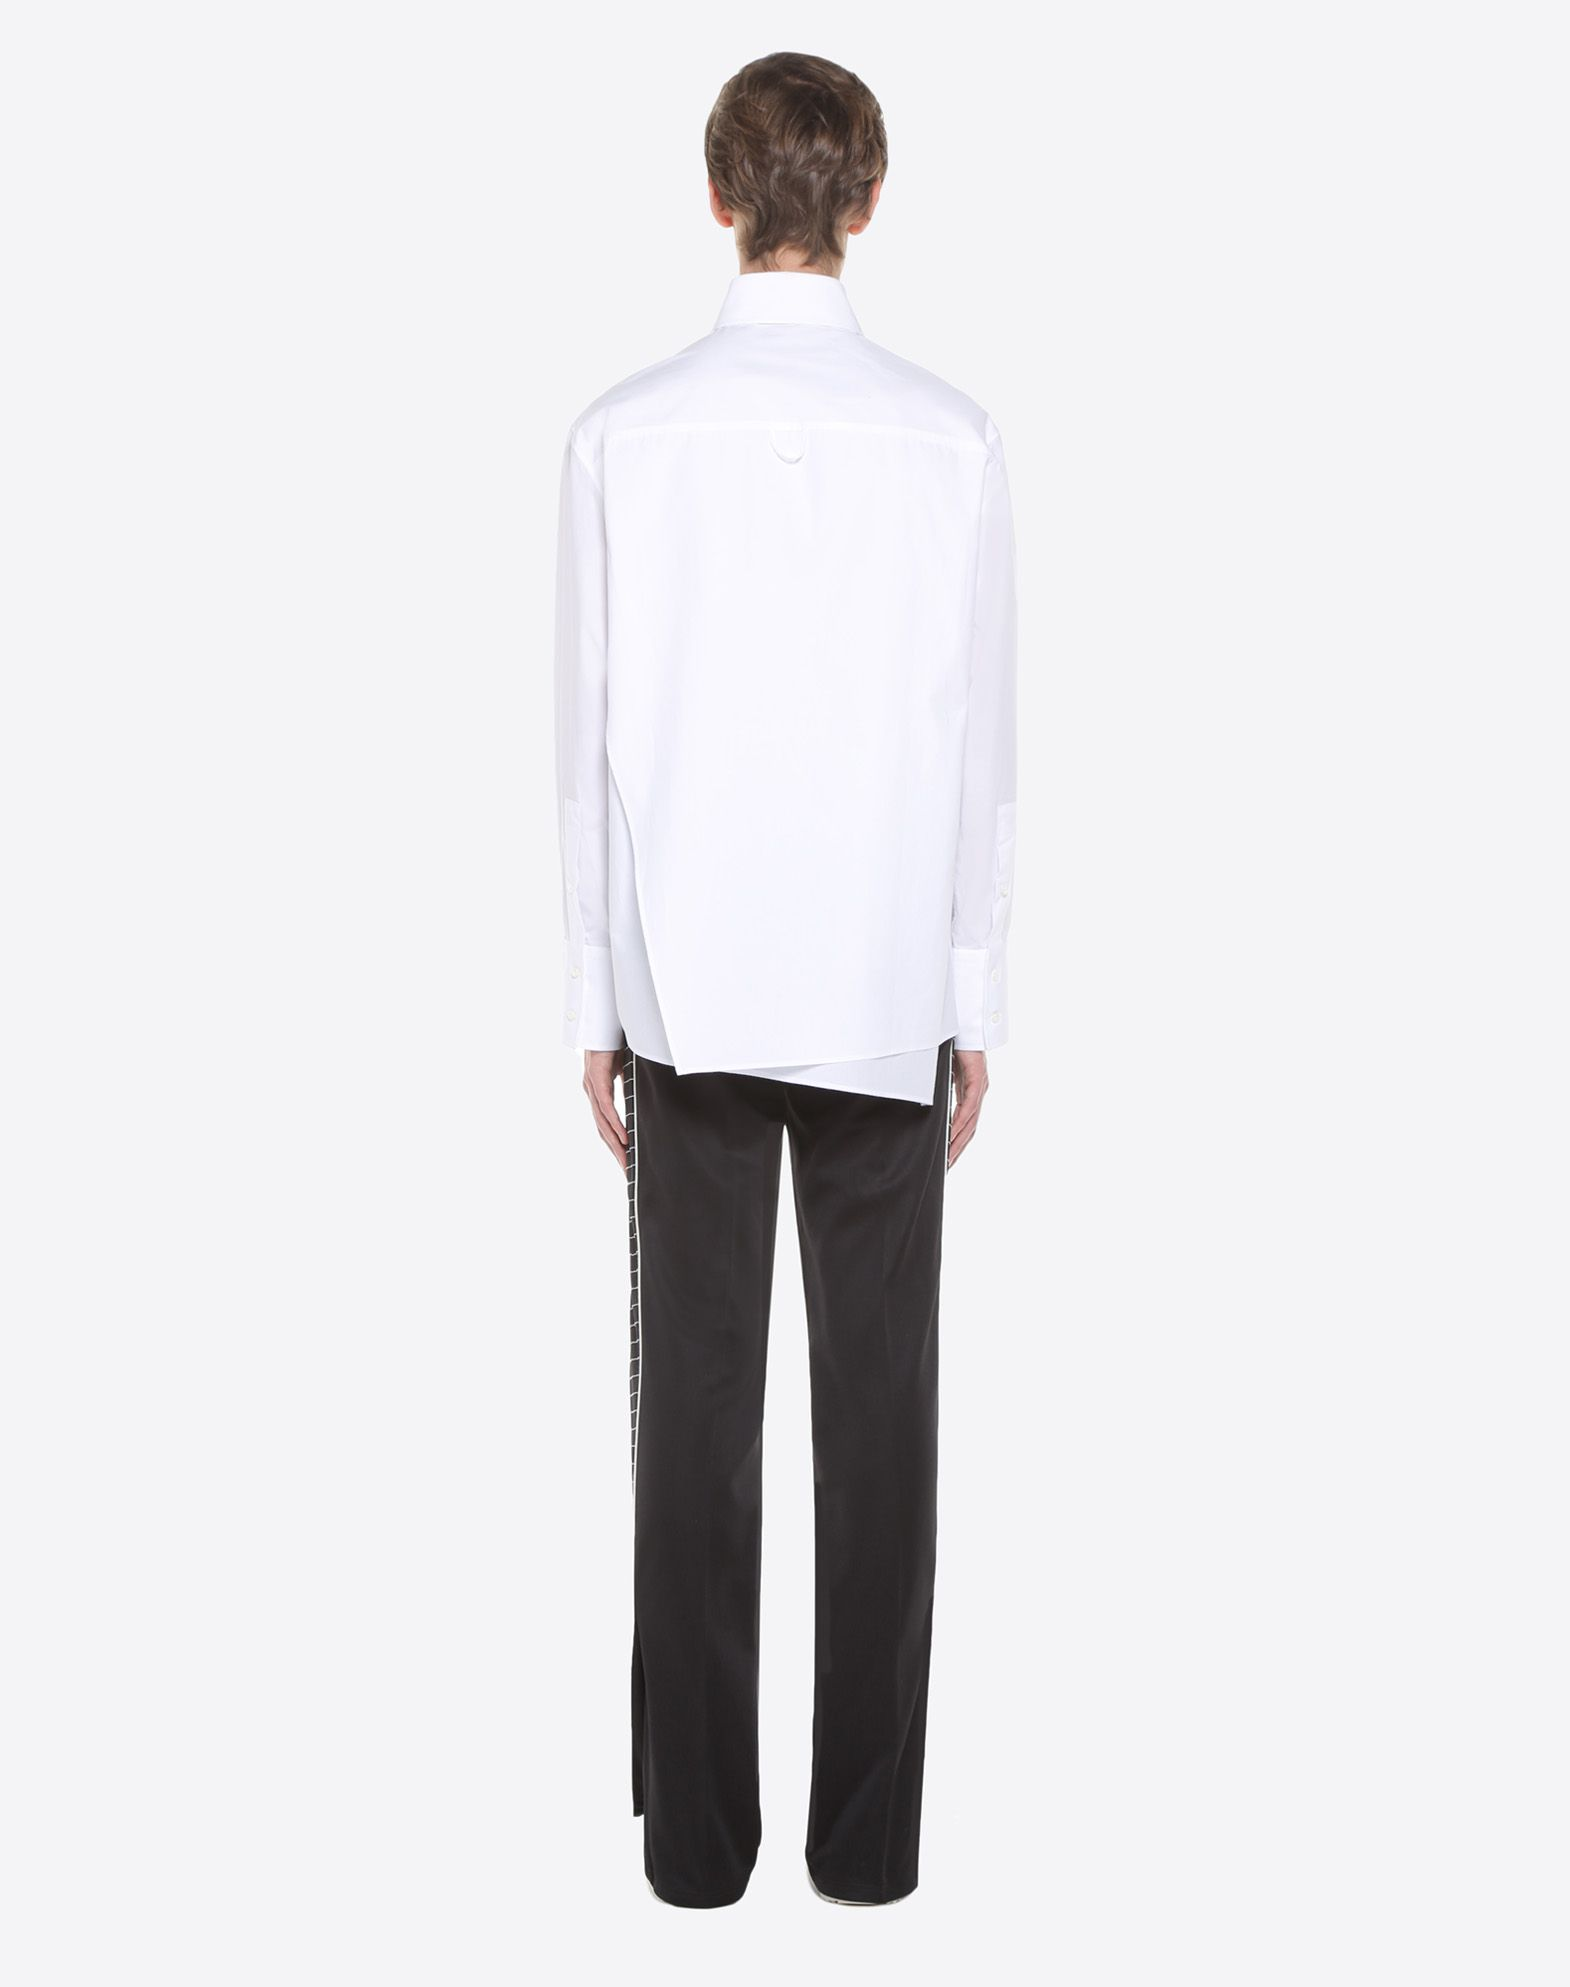 VALENTINO VLTN shirt with tie collar Shirt U e